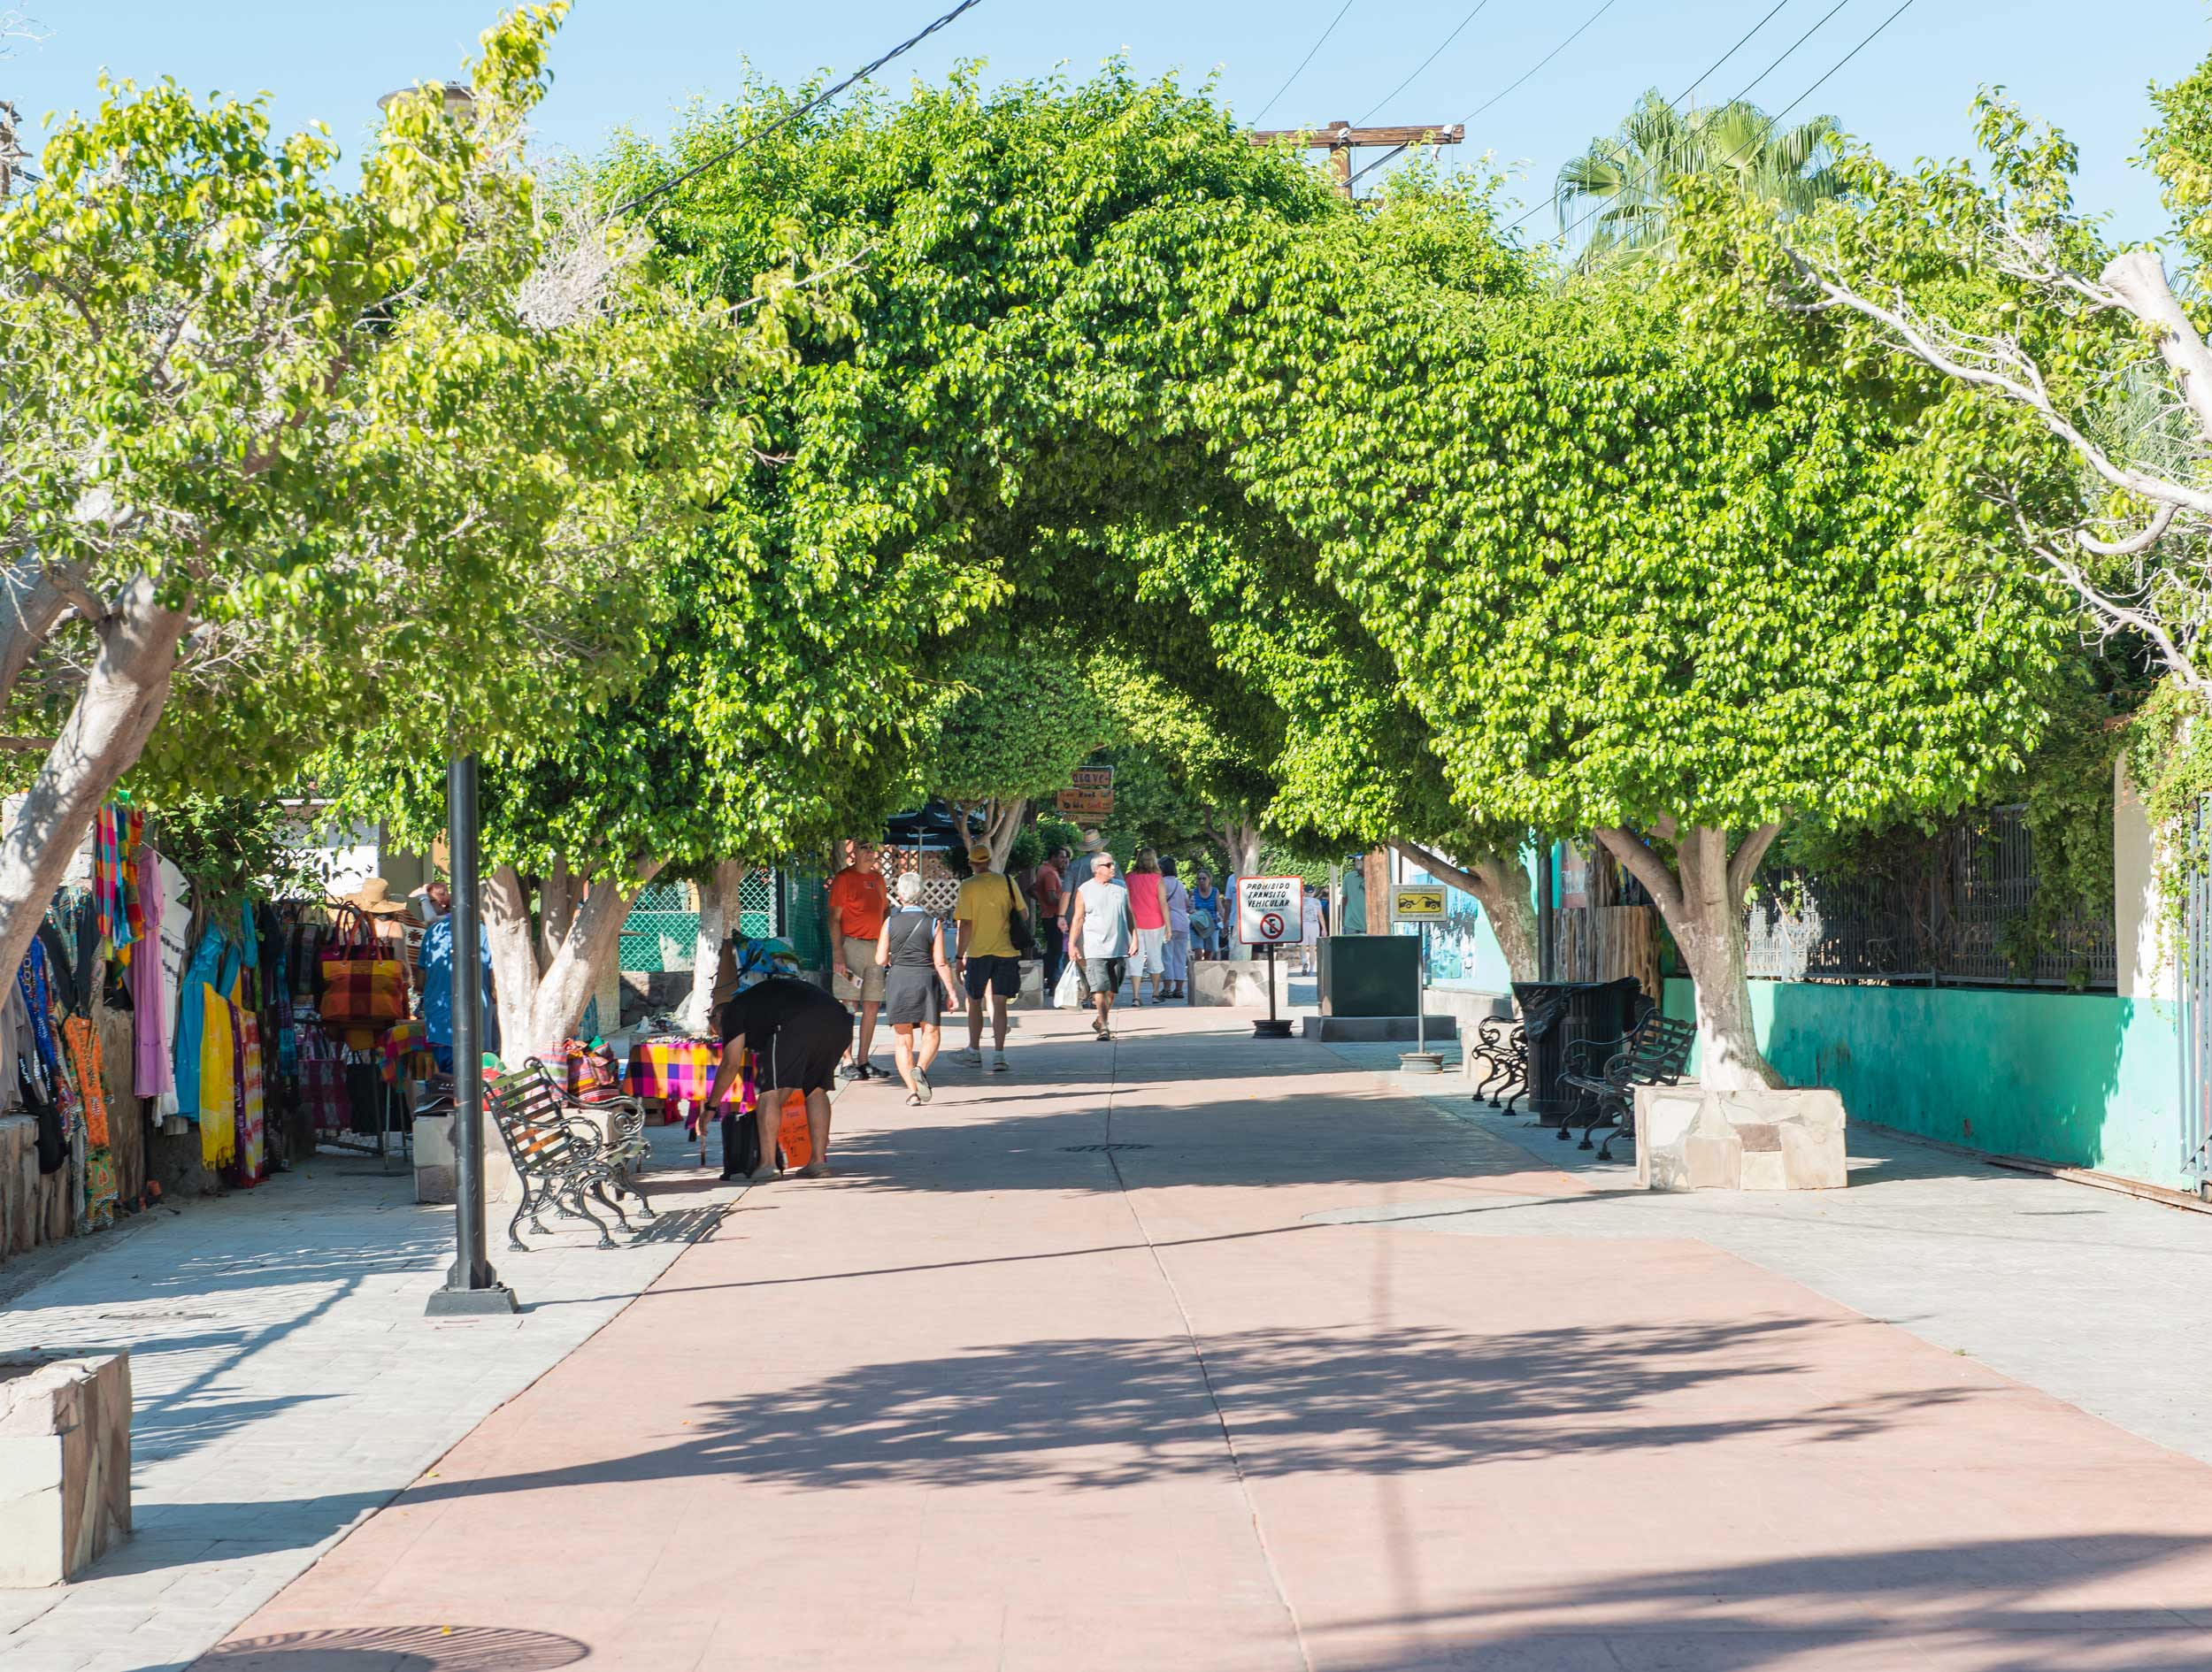 Paved alleyway under a green, leafy tunnel with stalls lining the sides